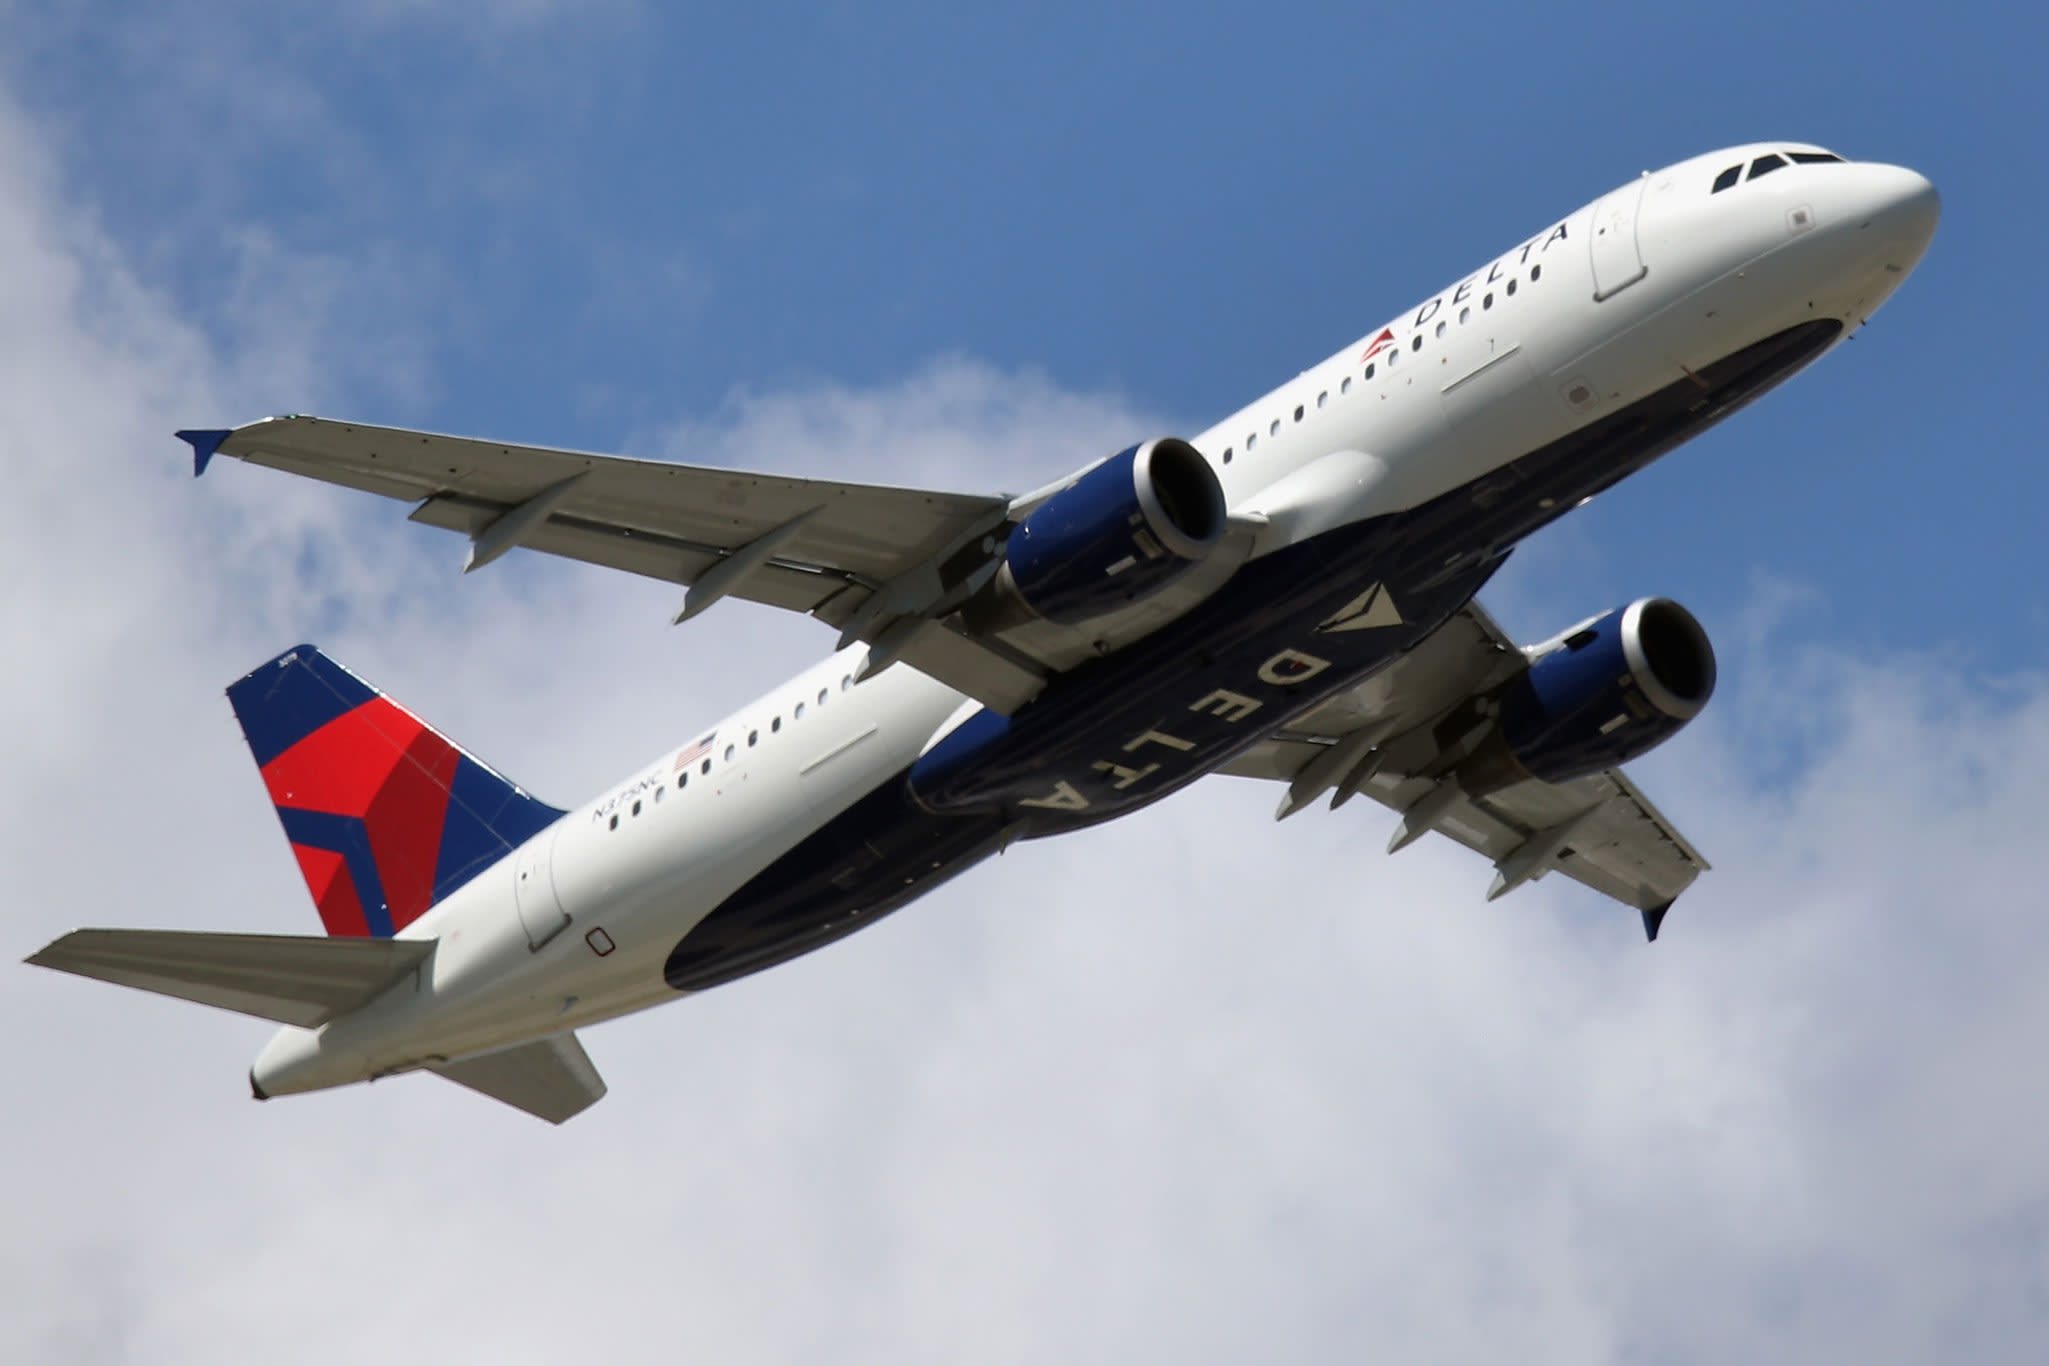 Delta forecasts revenue growth in 2020, sending shares higher